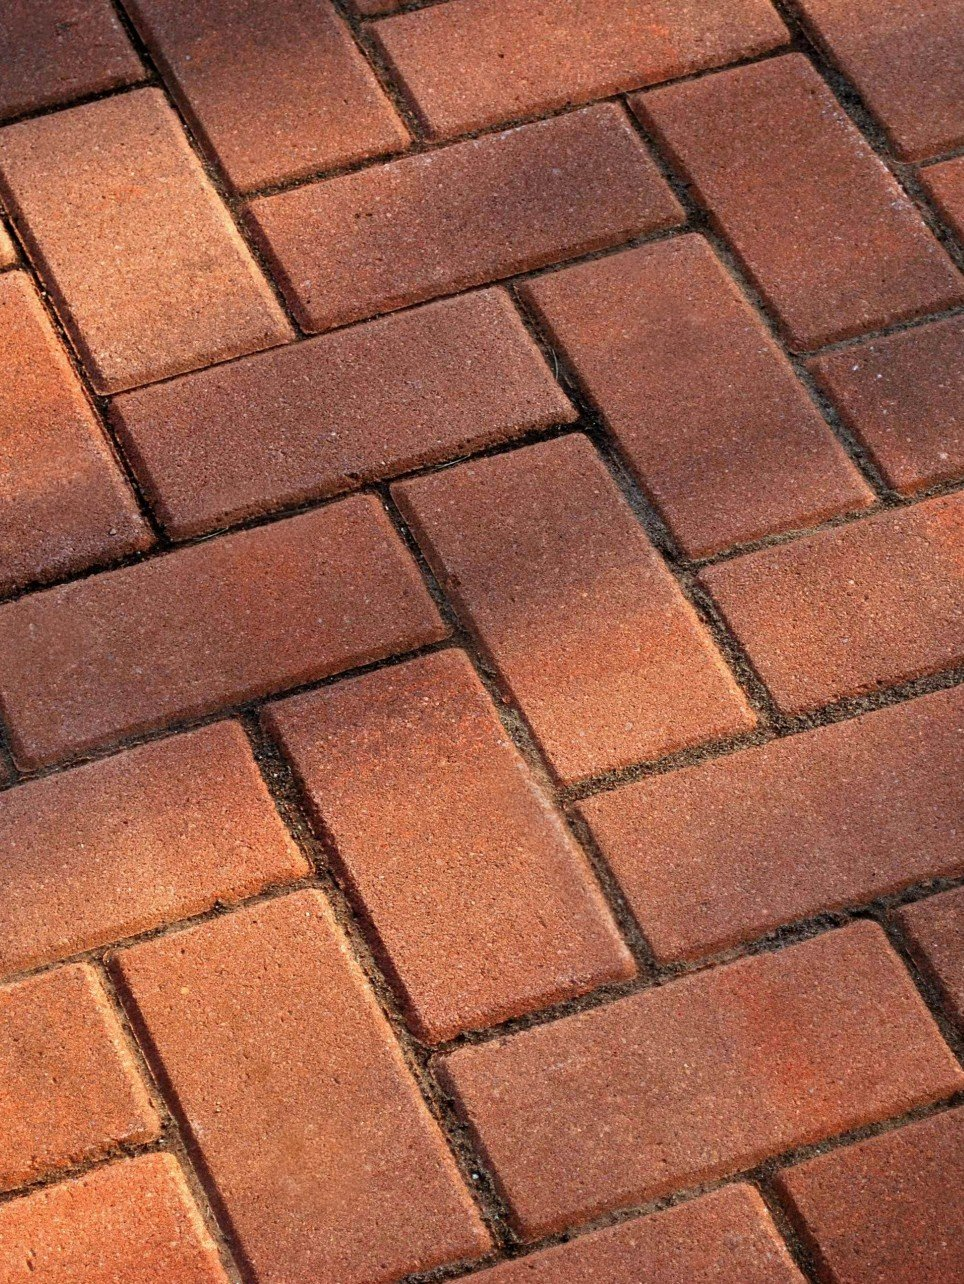 Block Paving Companies Rock